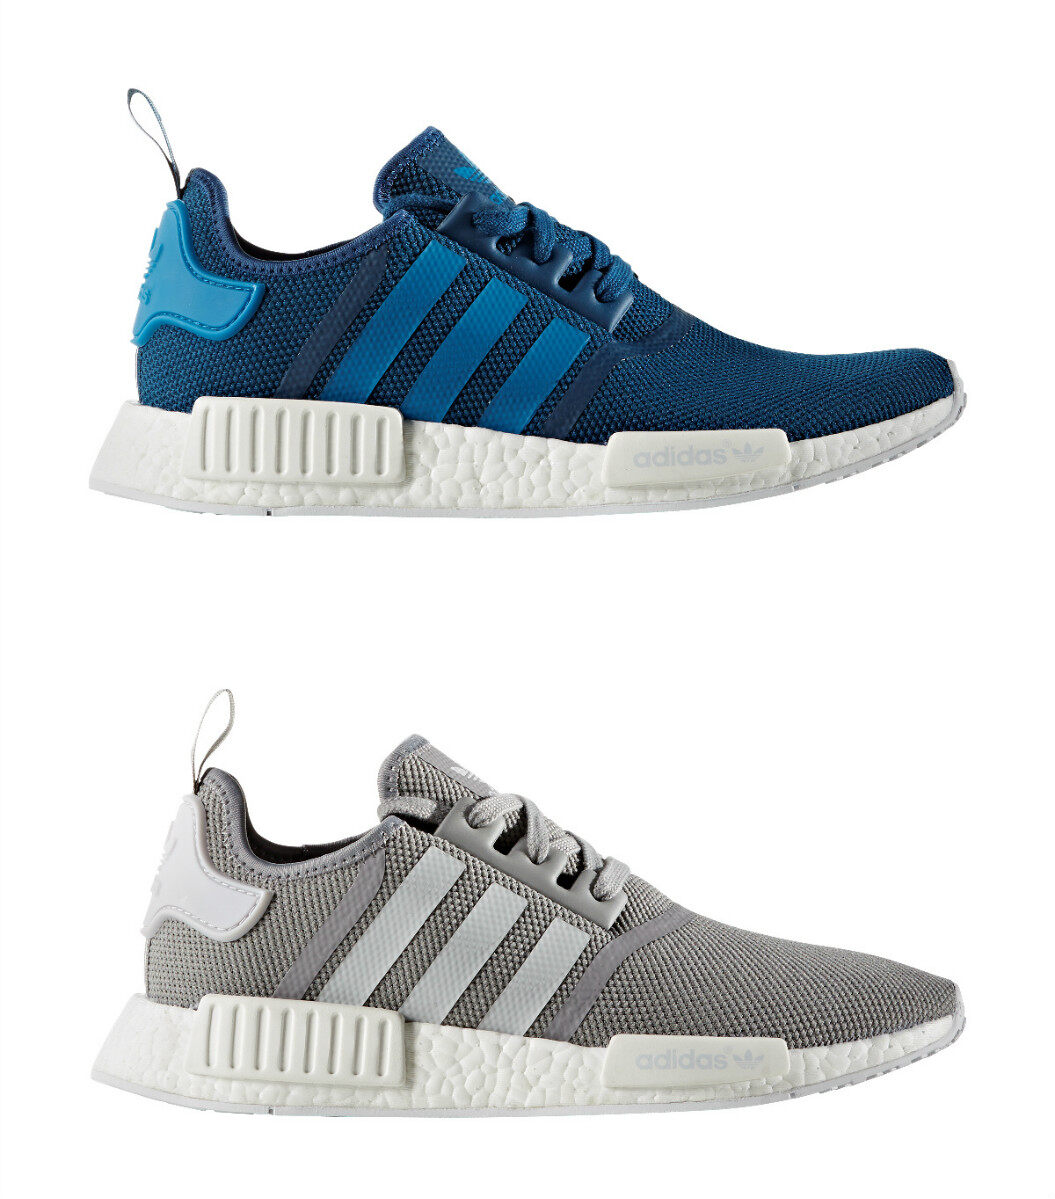 adidas Originals, NMD R1, NMD CS, adidas Originals NMD